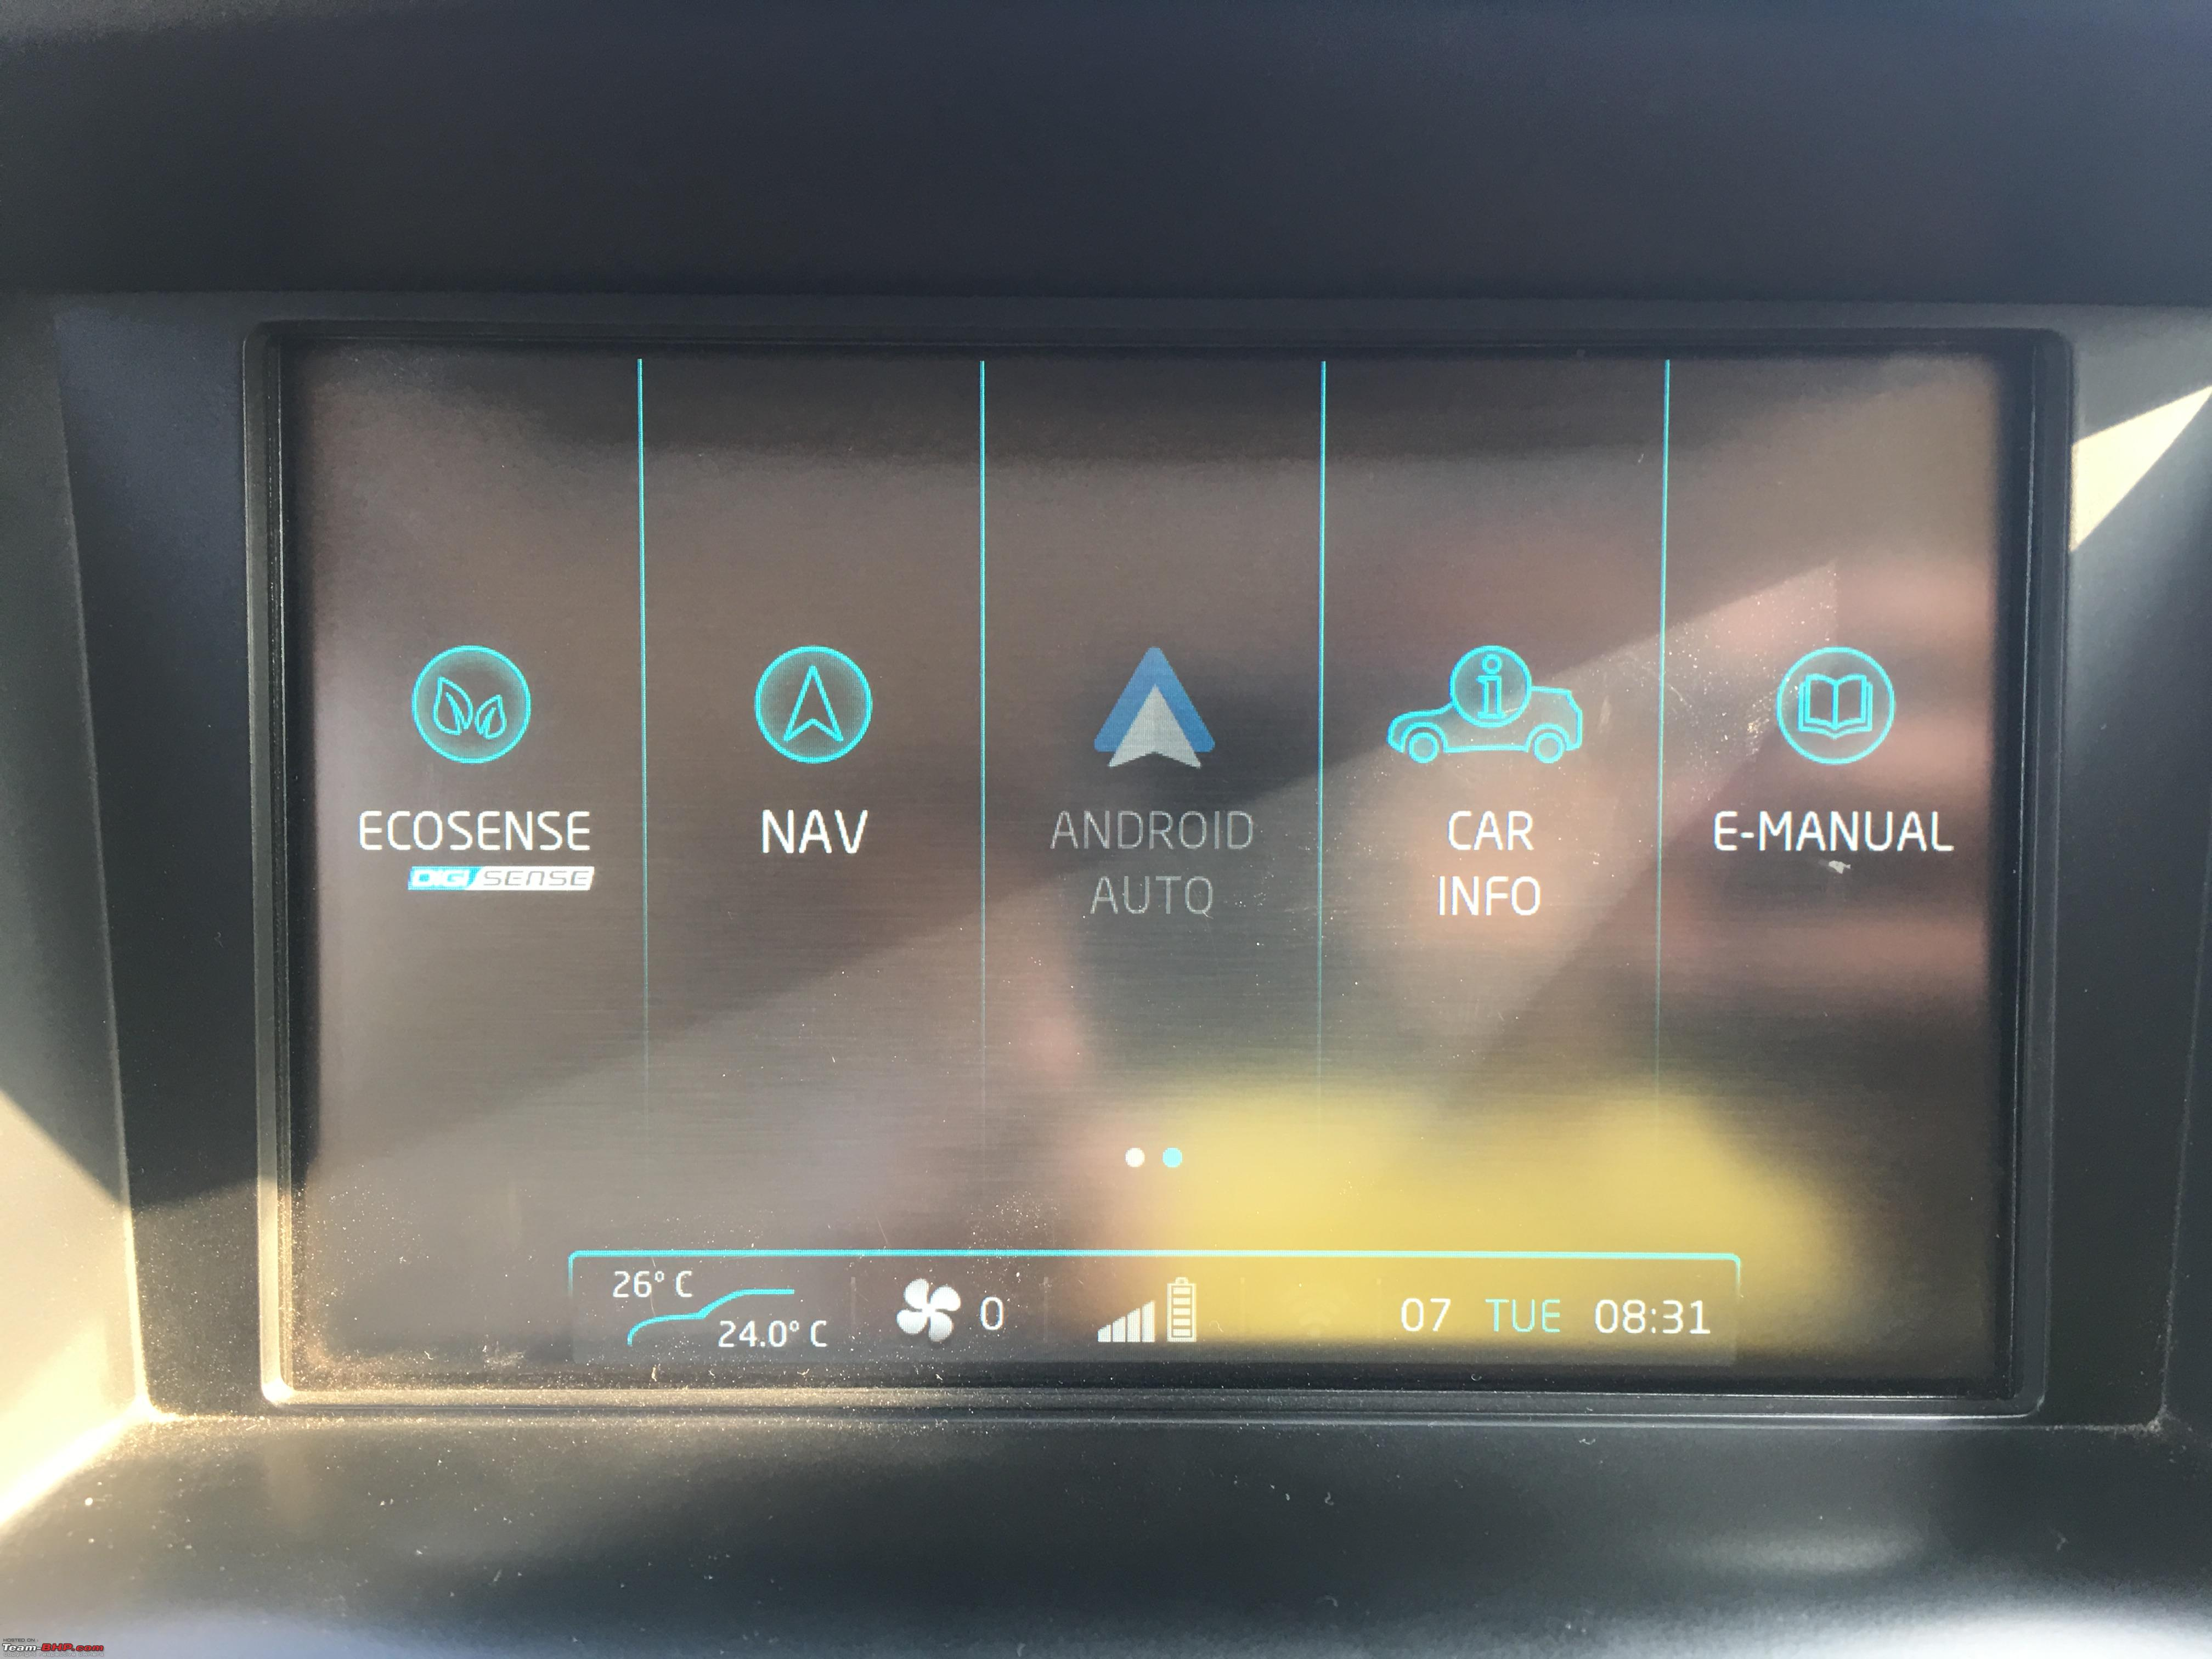 Mahindra xuv500 gets android auto connected apps img_1563 jpg